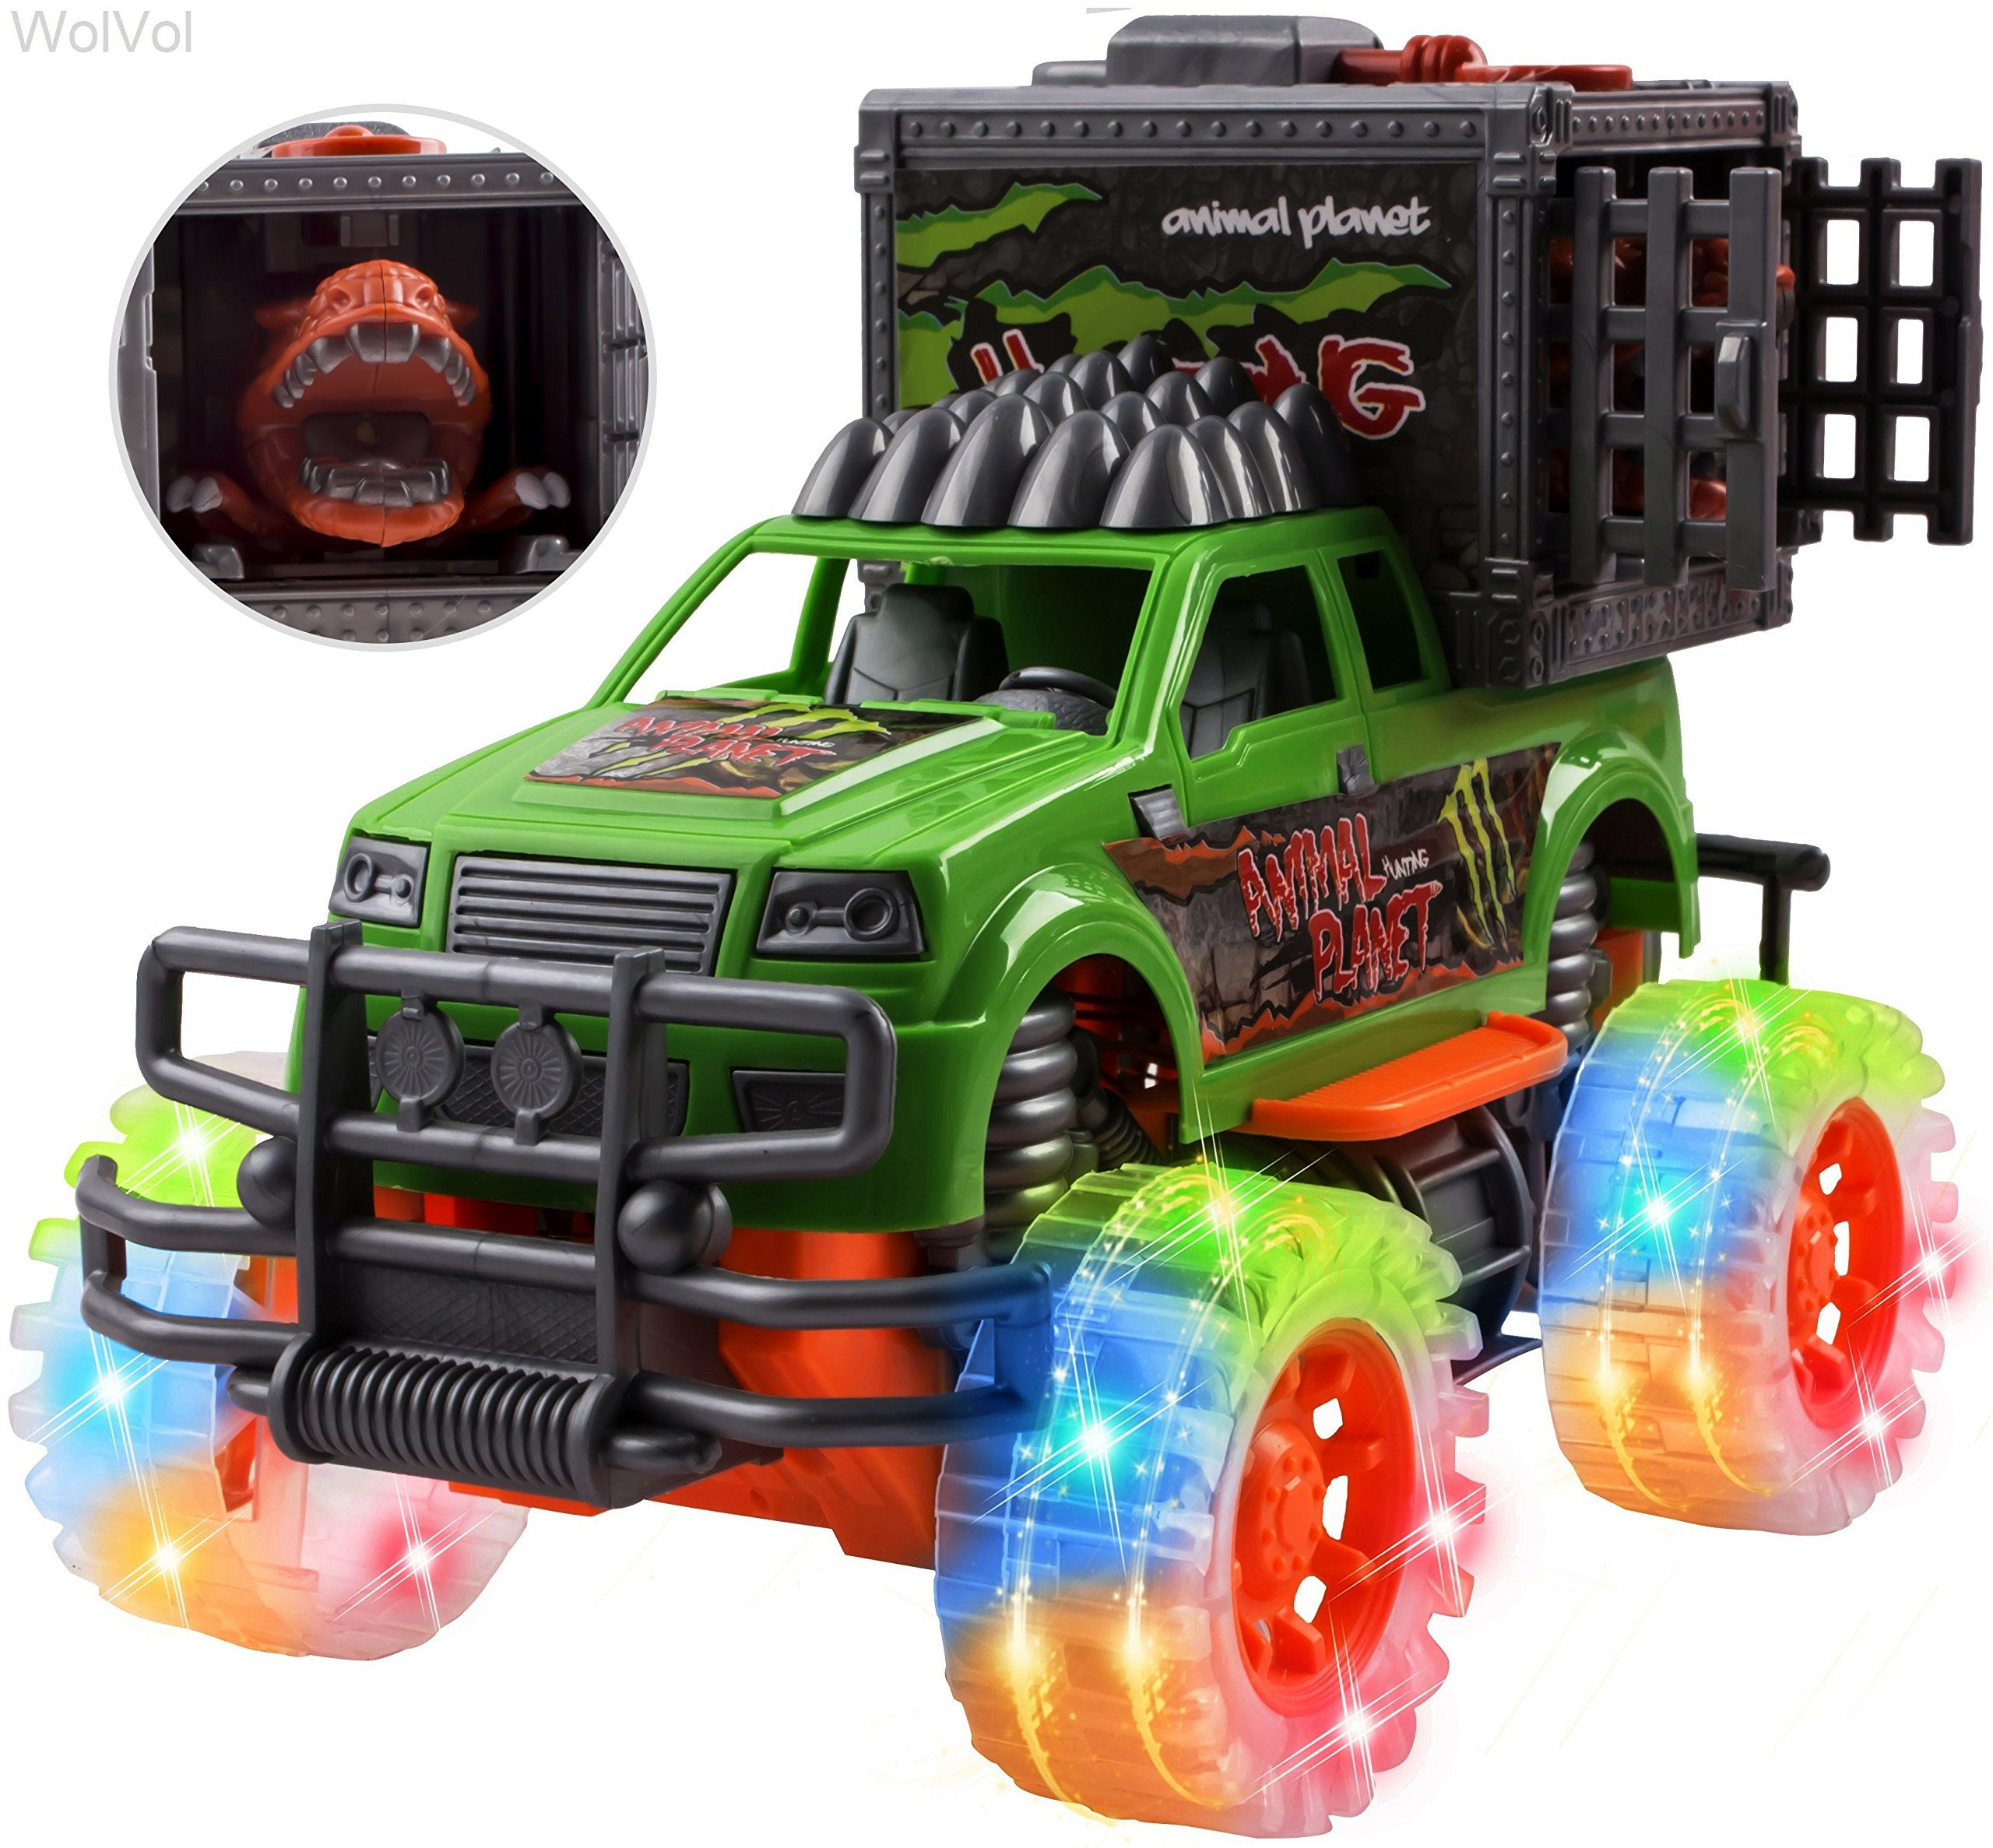 WolVol Off-Road SUV Jungle Dinosaur Car - Friction Powered Dino Cage Truck w/ Lighted Wheels & Sounds - Big Pull Back Action Toy Vehicle for Boys & Girls - Release The Dinosaur from its Cage